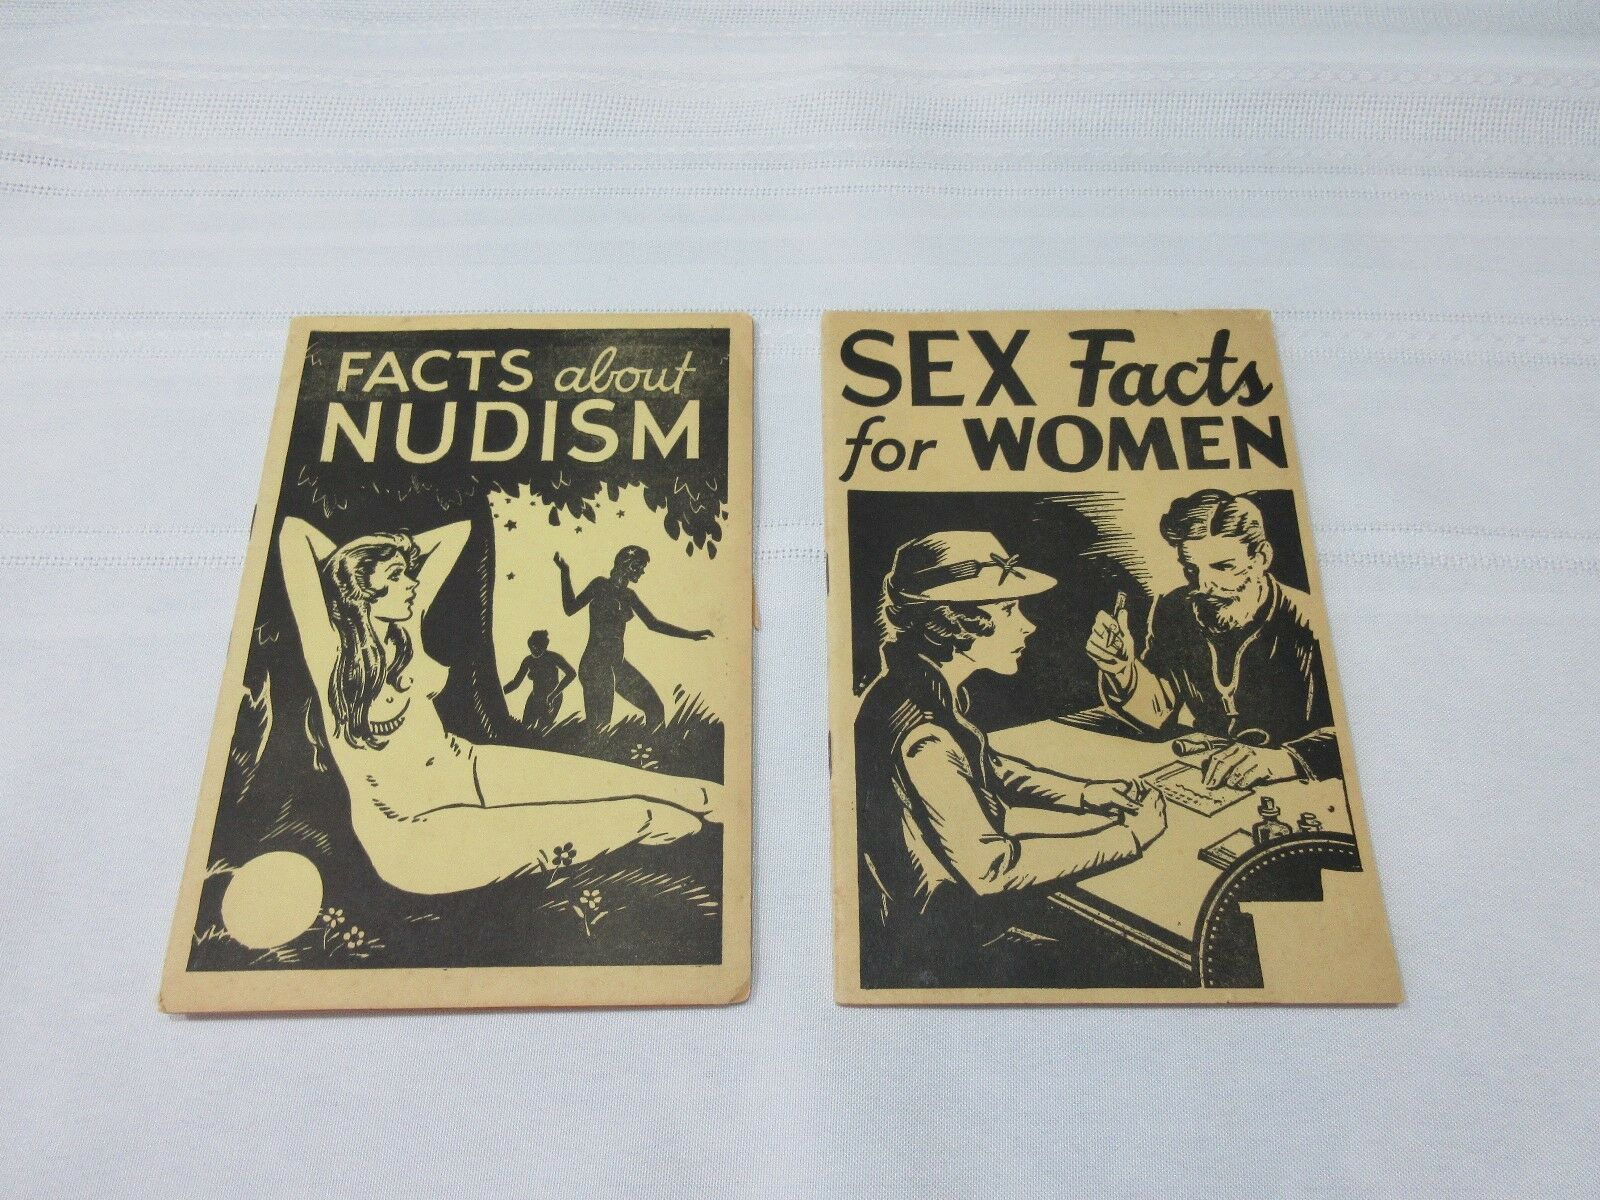 nudism and sex facts booklets